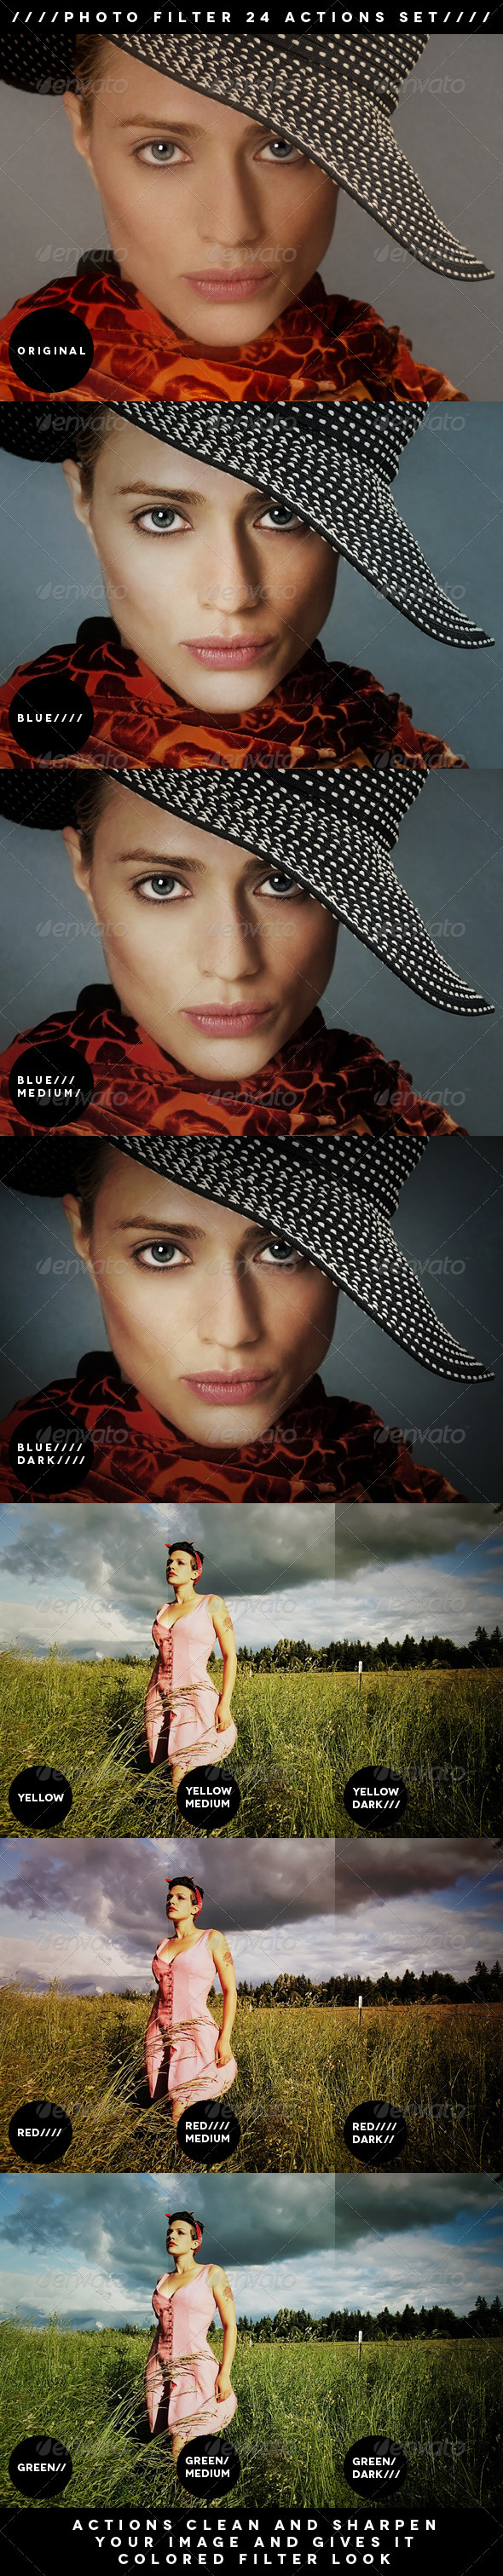 GraphicRiver PHOTO FILTER ACTIONS 1711788